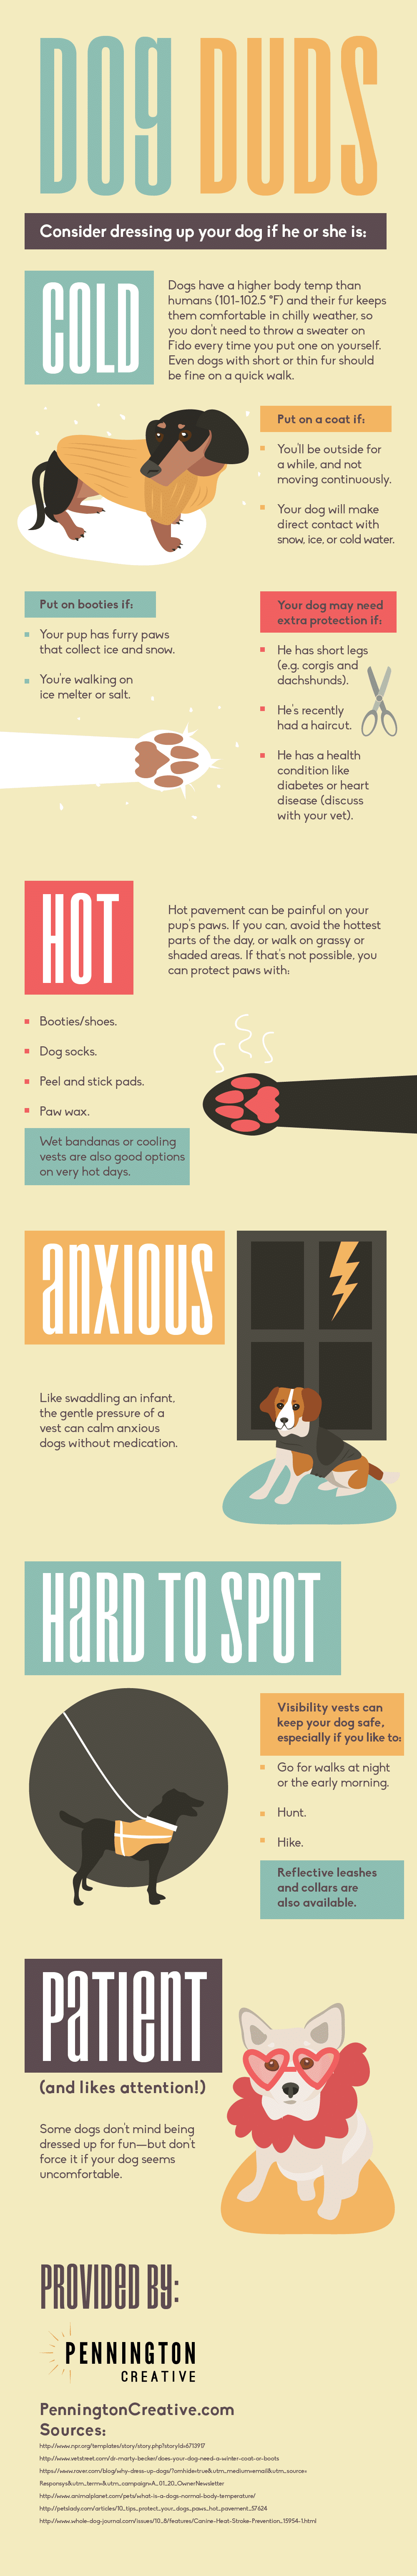 Dog Duds Infographic